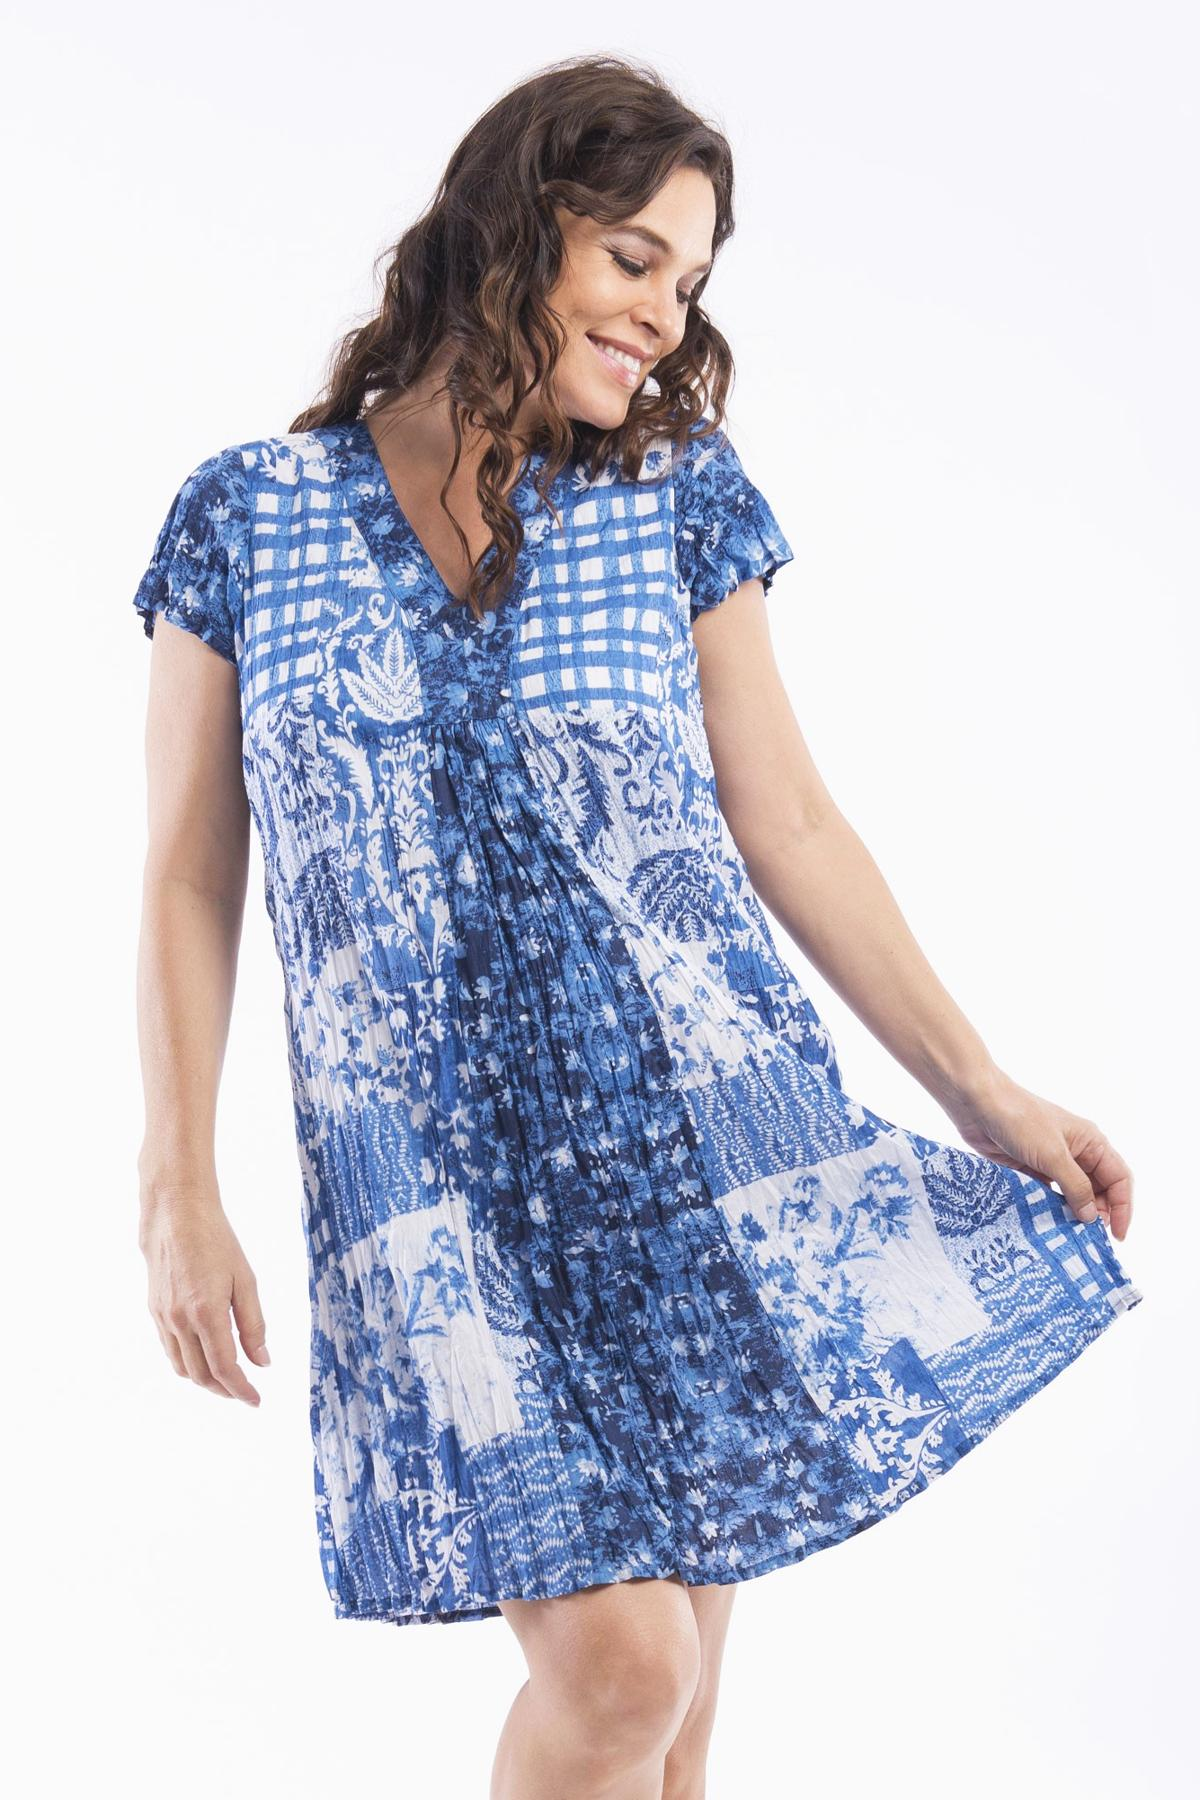 Delphi Dress Tunic by Orientique | I Love Tunics | Tunic Tops | Tunic Dresses | Women's Tops | Plus Size Australia | Mature Fashion